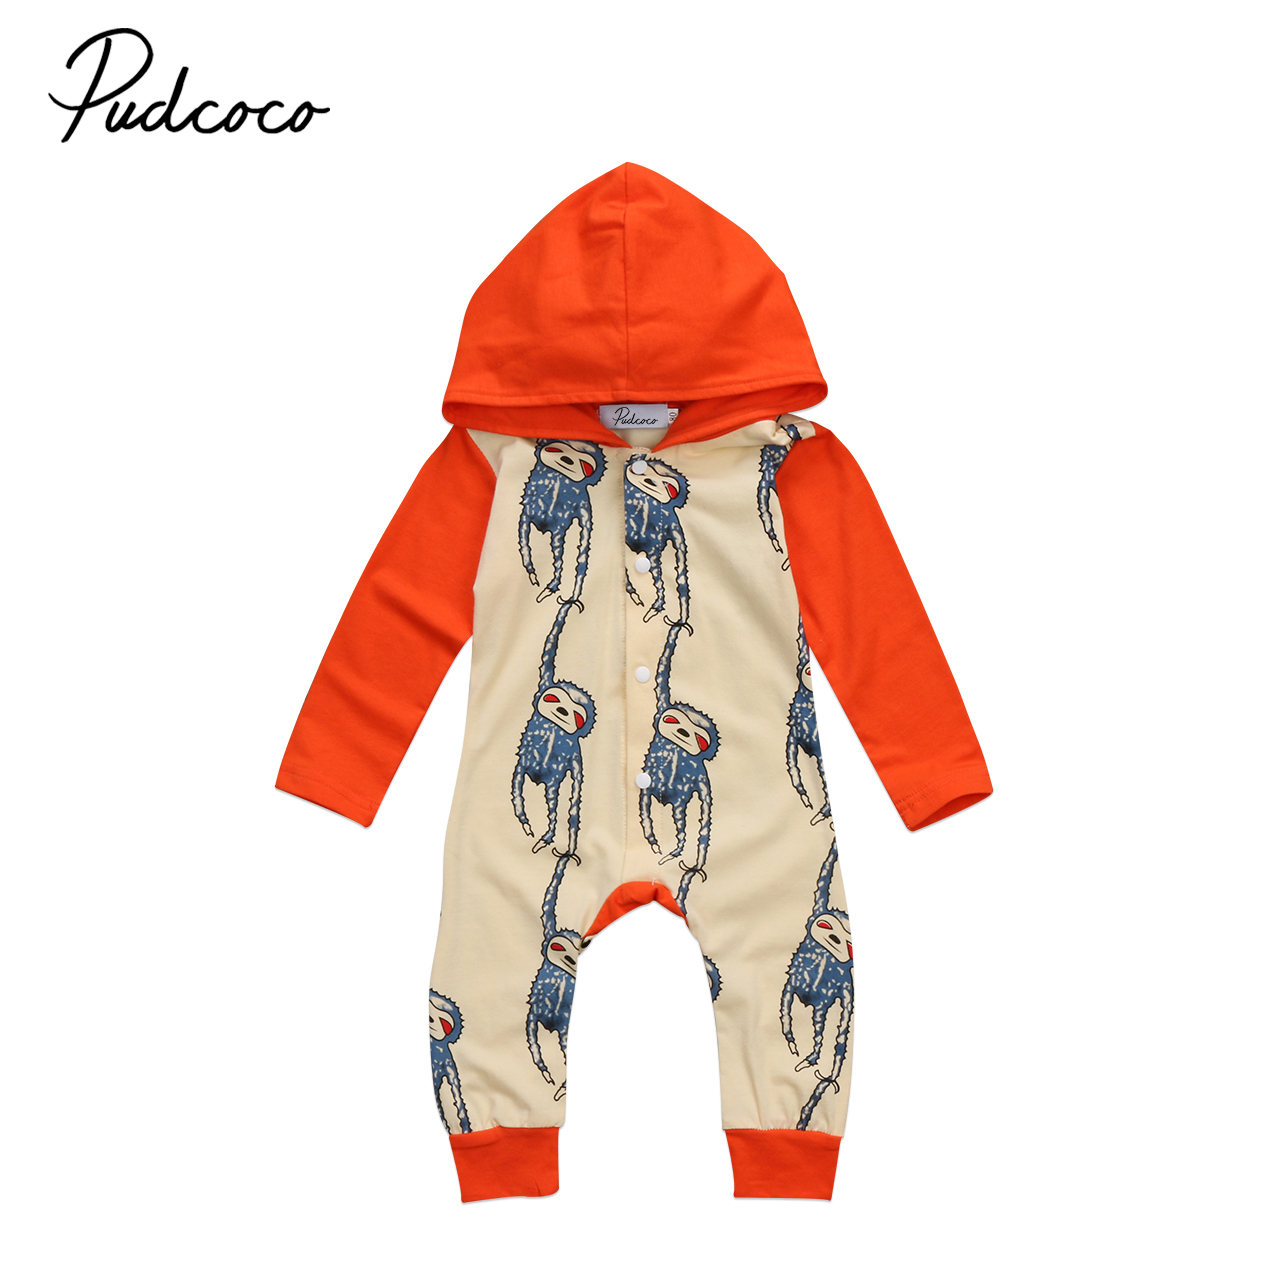 18f87839d671 Baby Clothing Newborn Baby Boys Girls Sloth Novelty Long sleeve ...